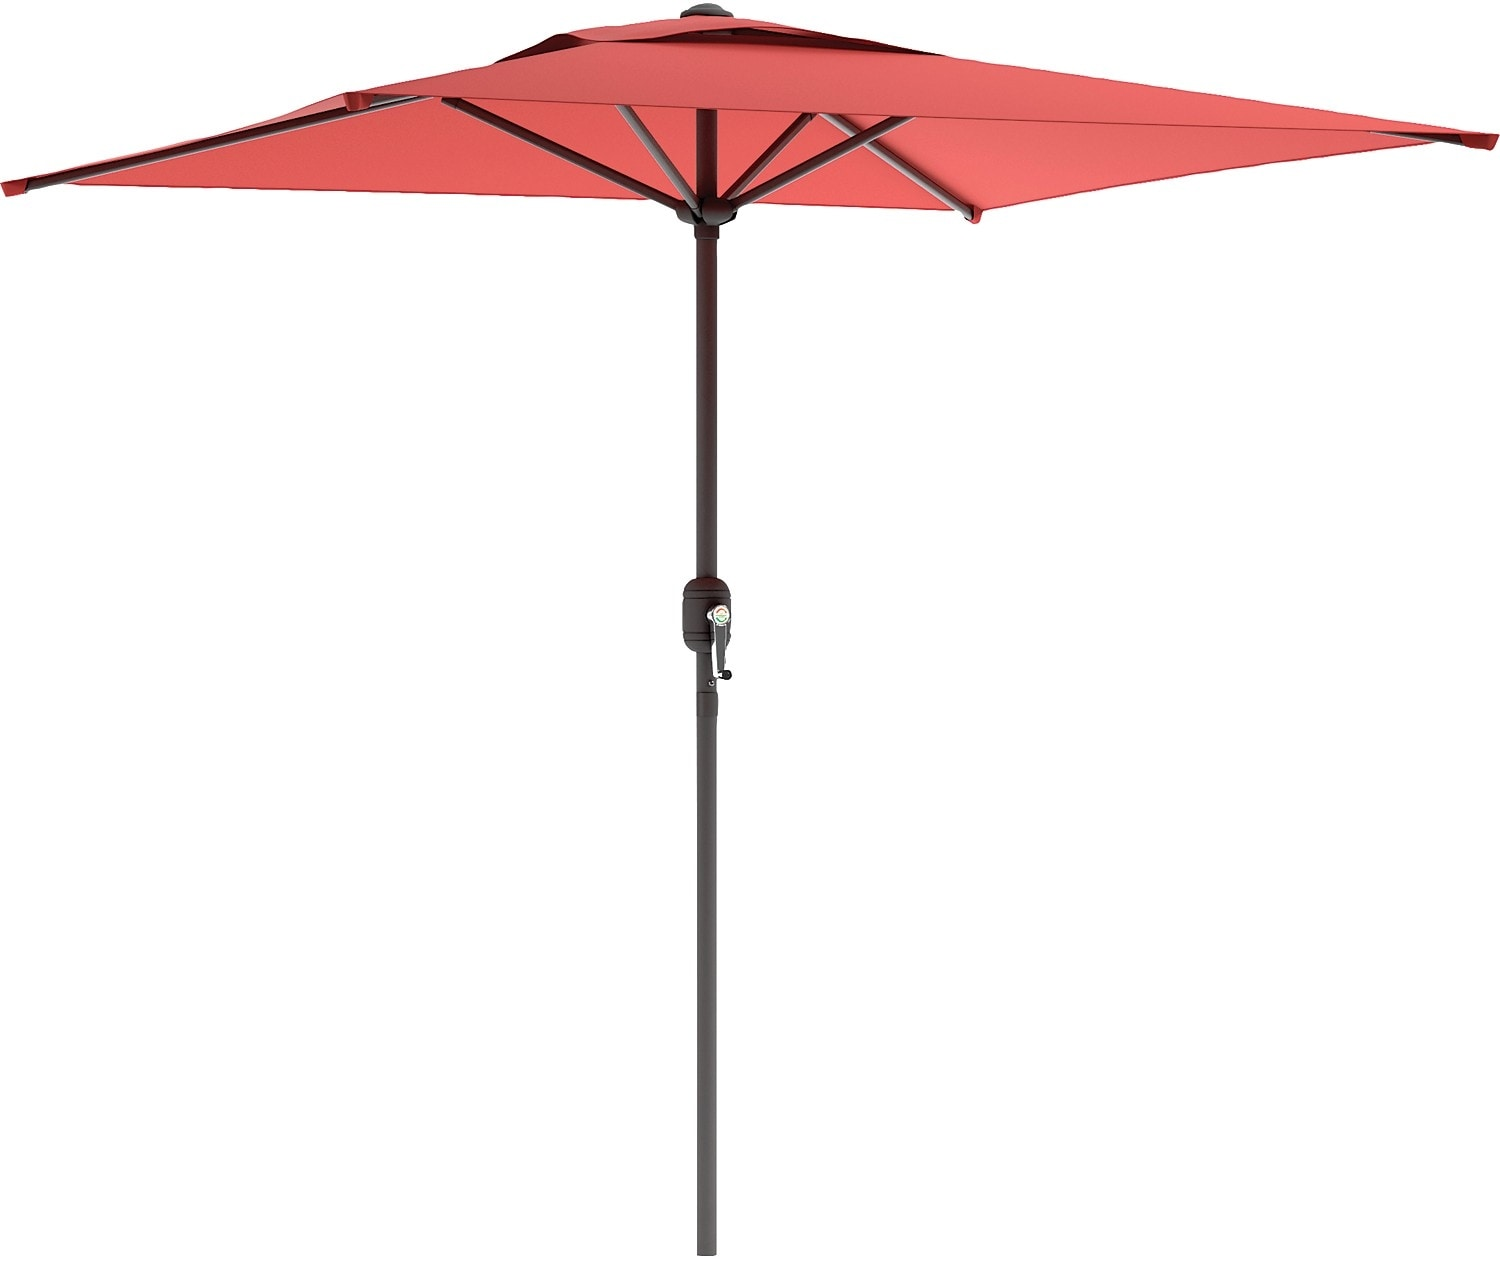 Square Patio Umbrella – Wine Red